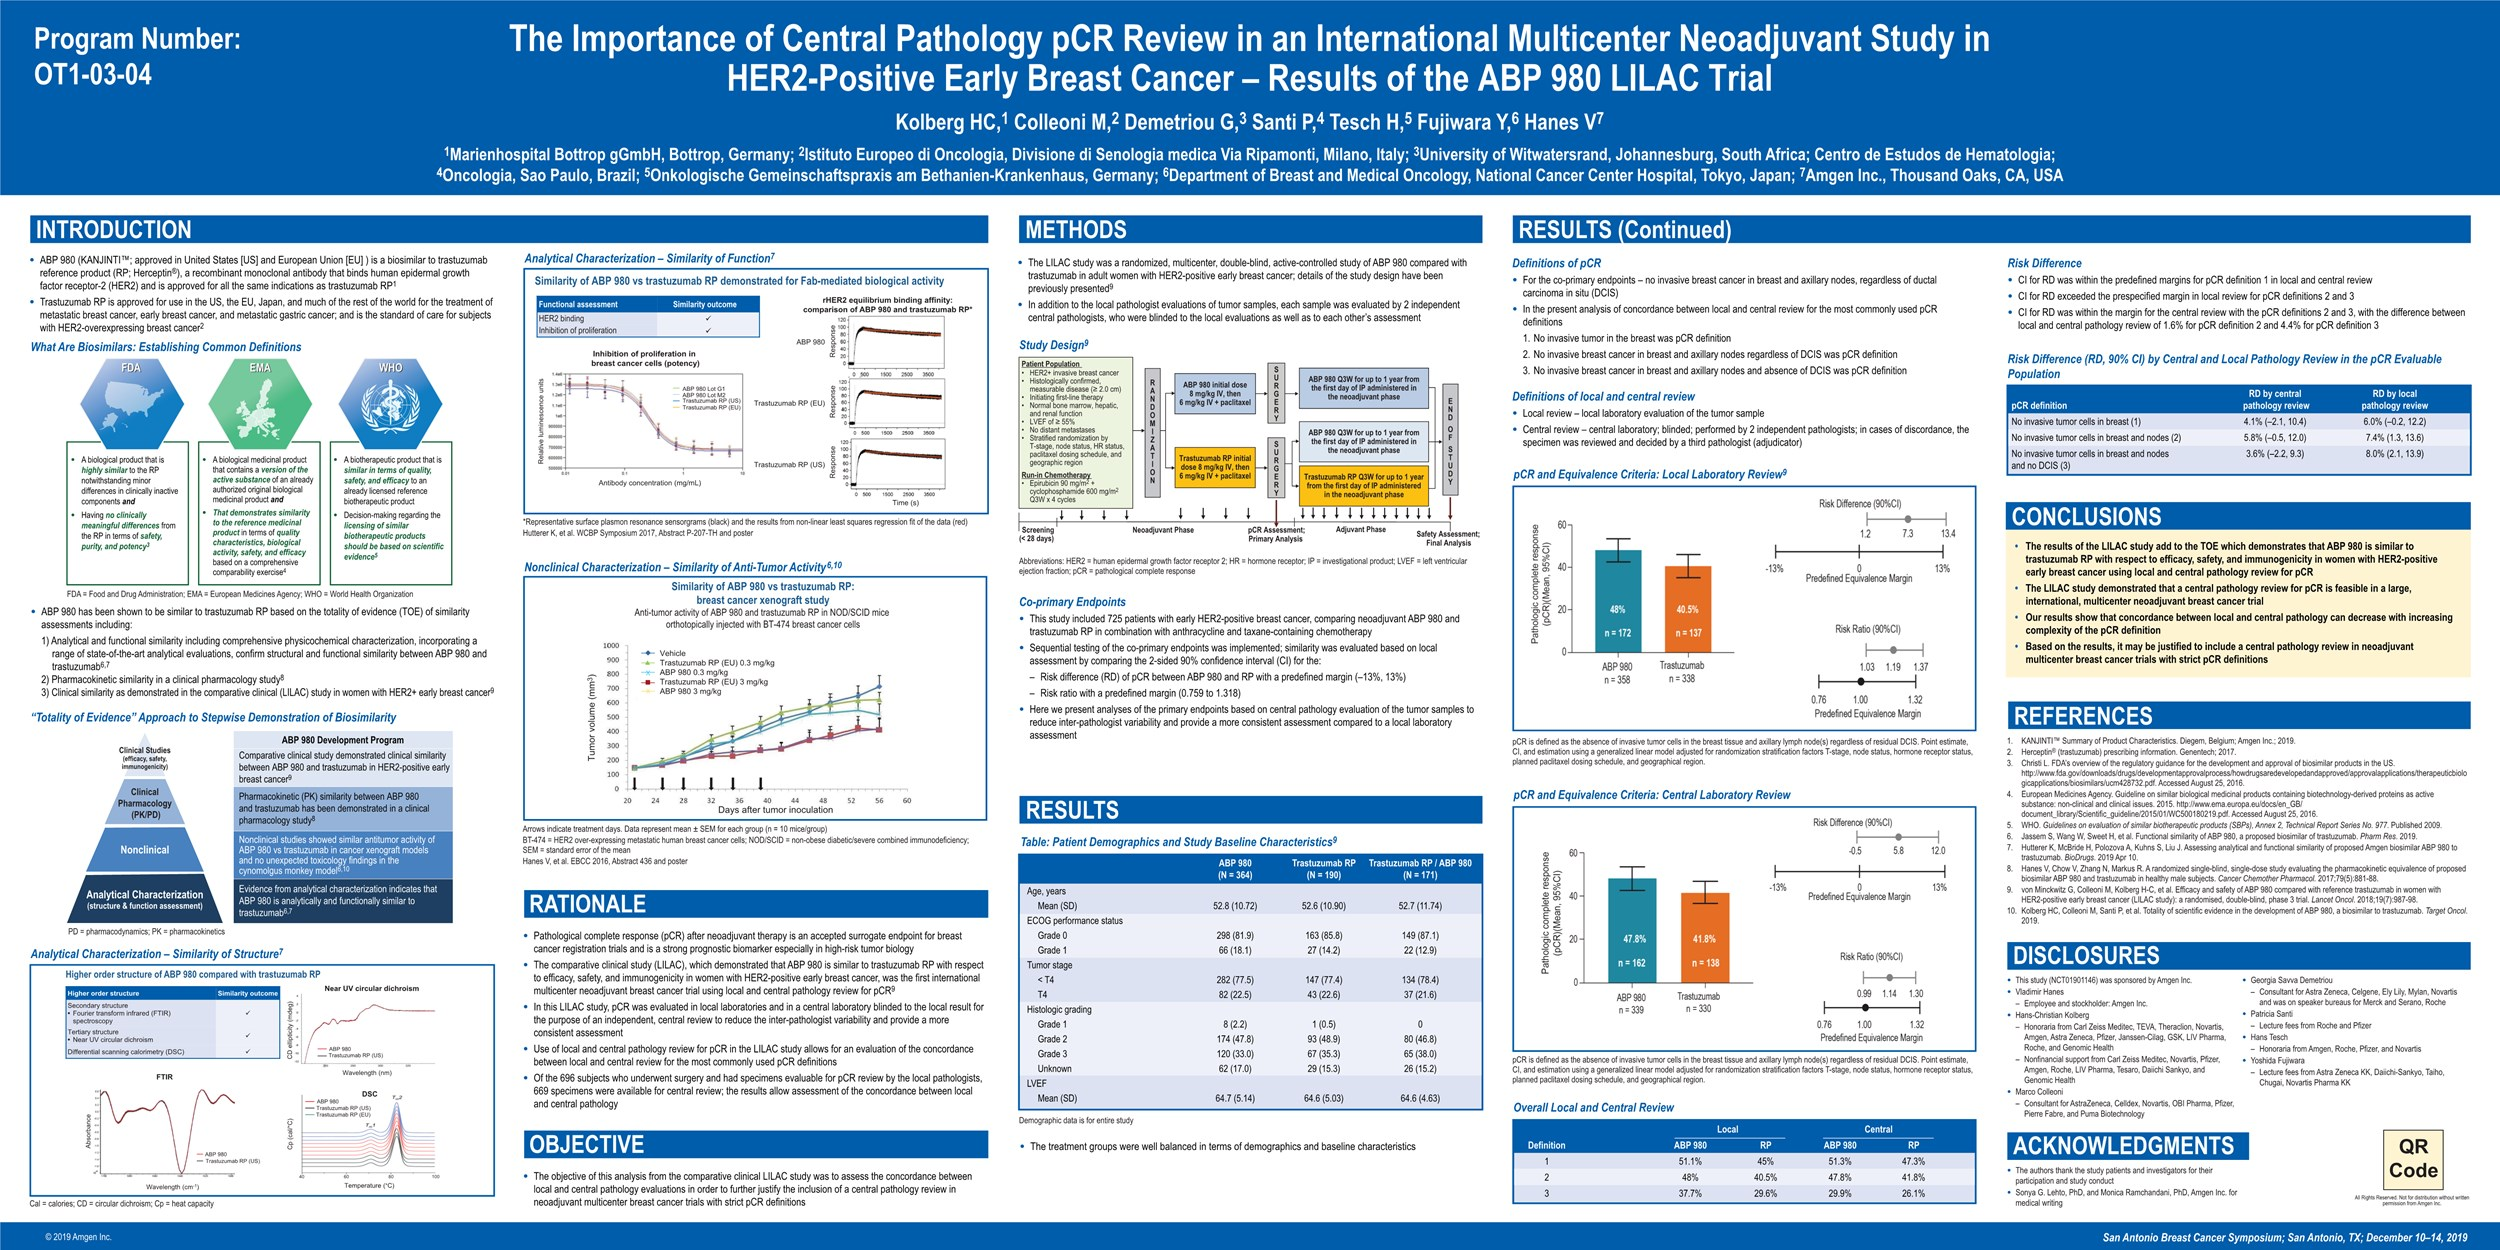 The importance of central pathology pCR review in an international multicenter neoadjuvant study in HER2 positive early breast cancer - Results of the ABP 980 LILAC trial